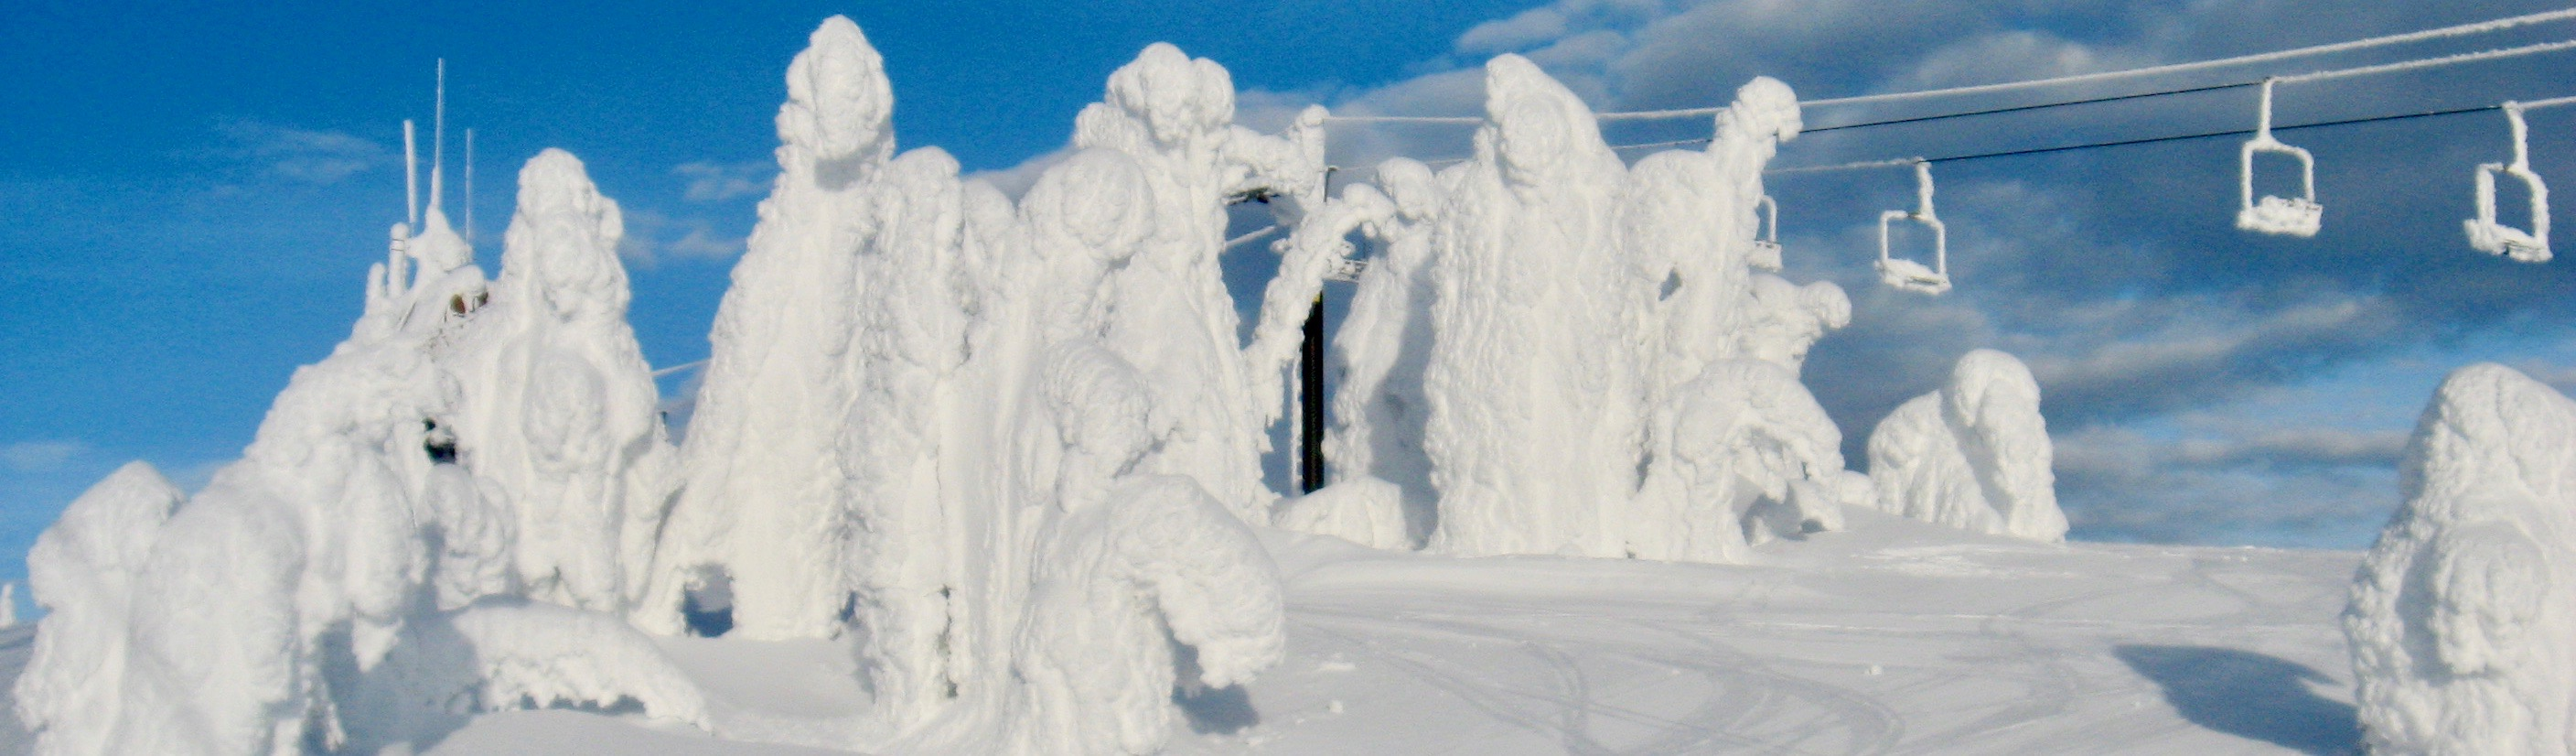 Ski lift attacked by snow ghosts